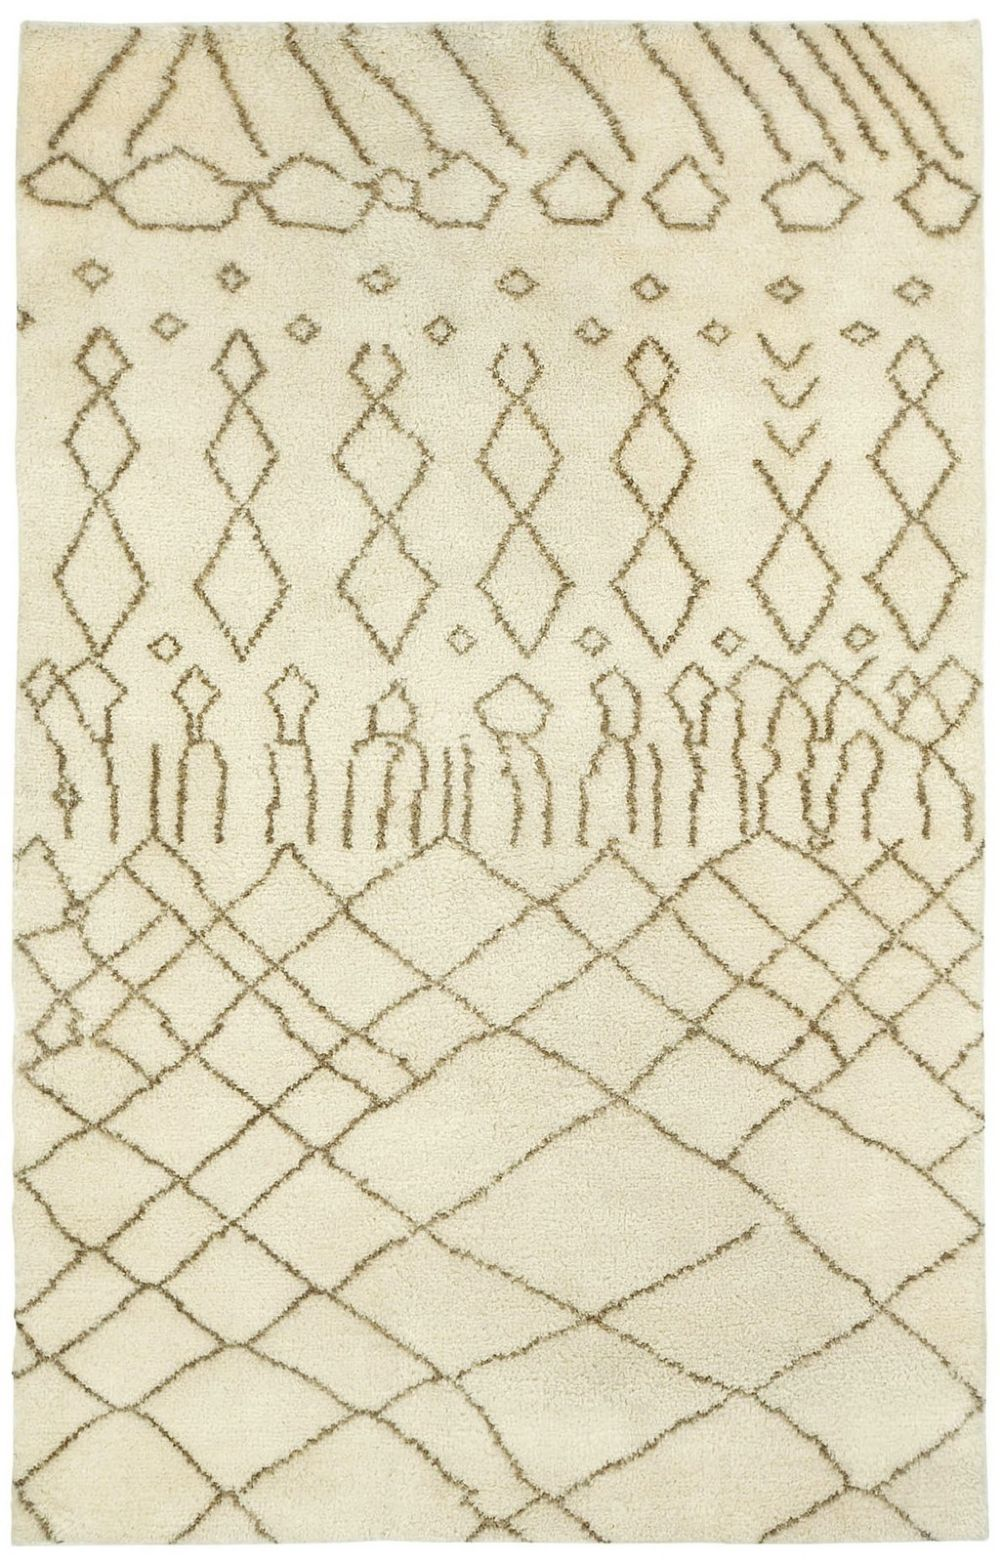 capel fortress-marrakesh contemporary area rug collection